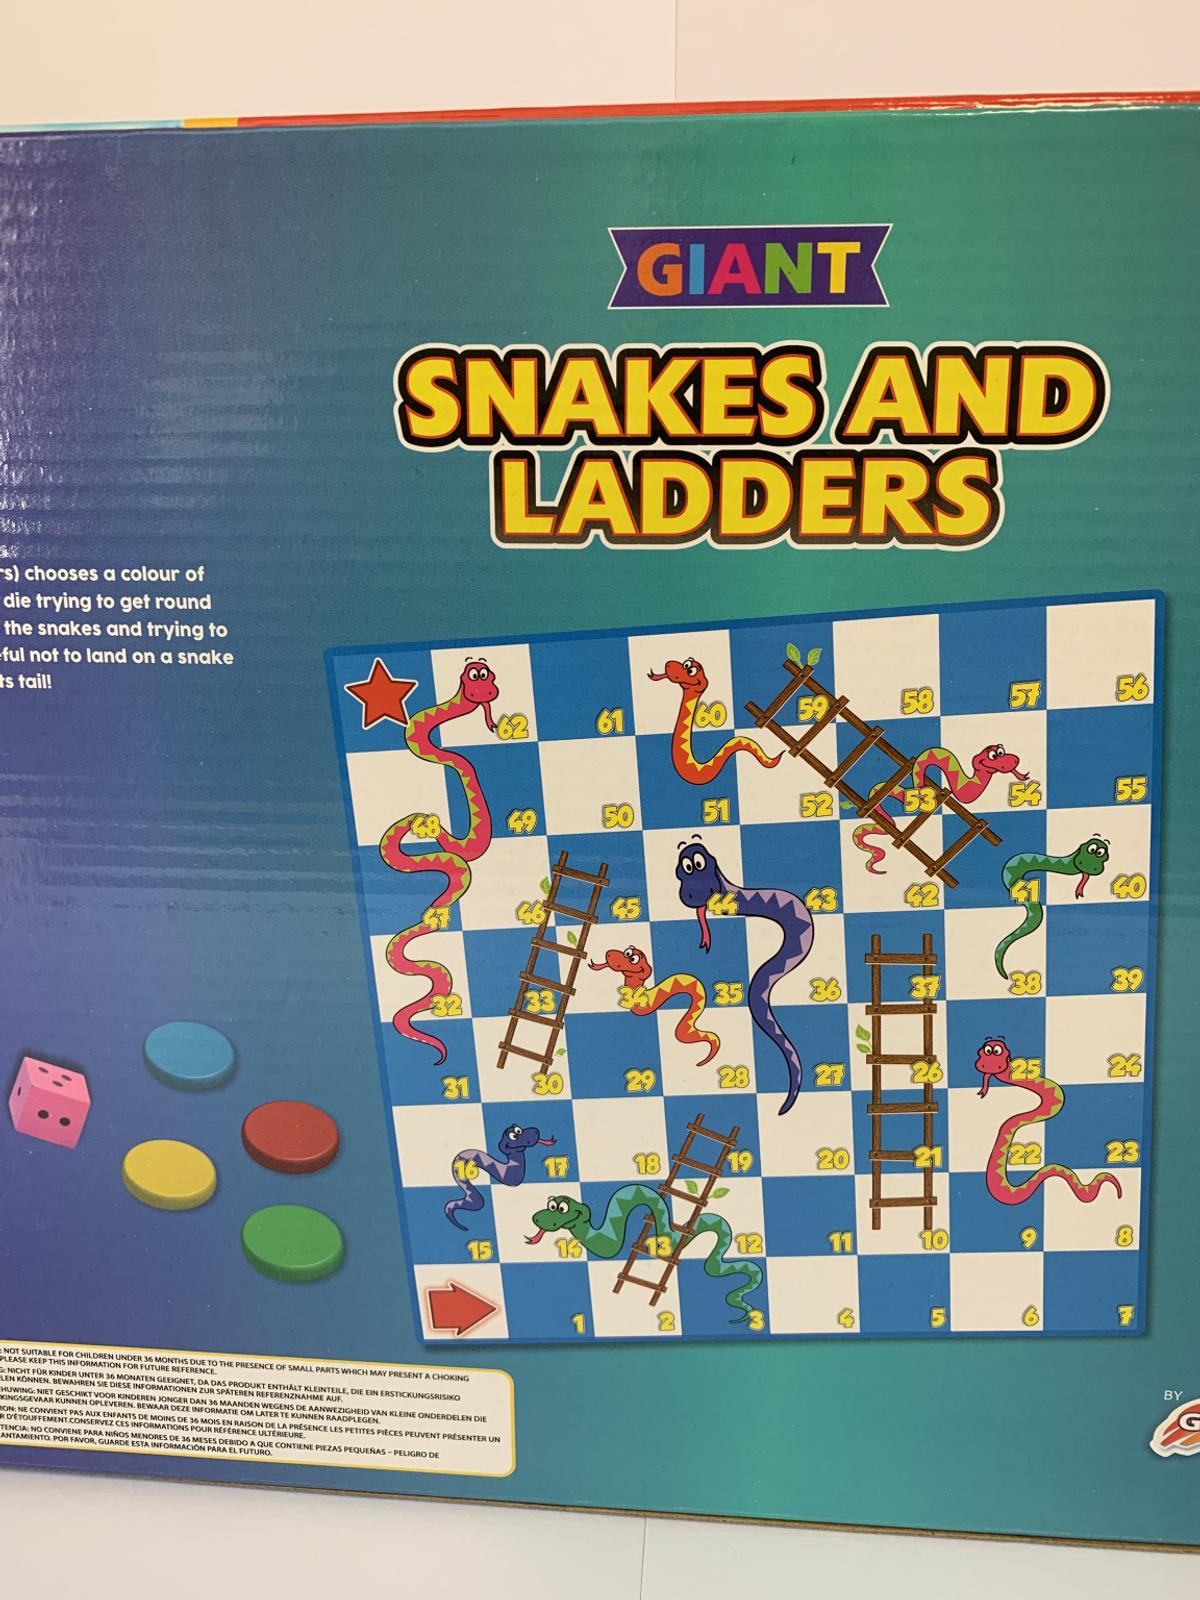 Giant Snakes And Ladders Game Set